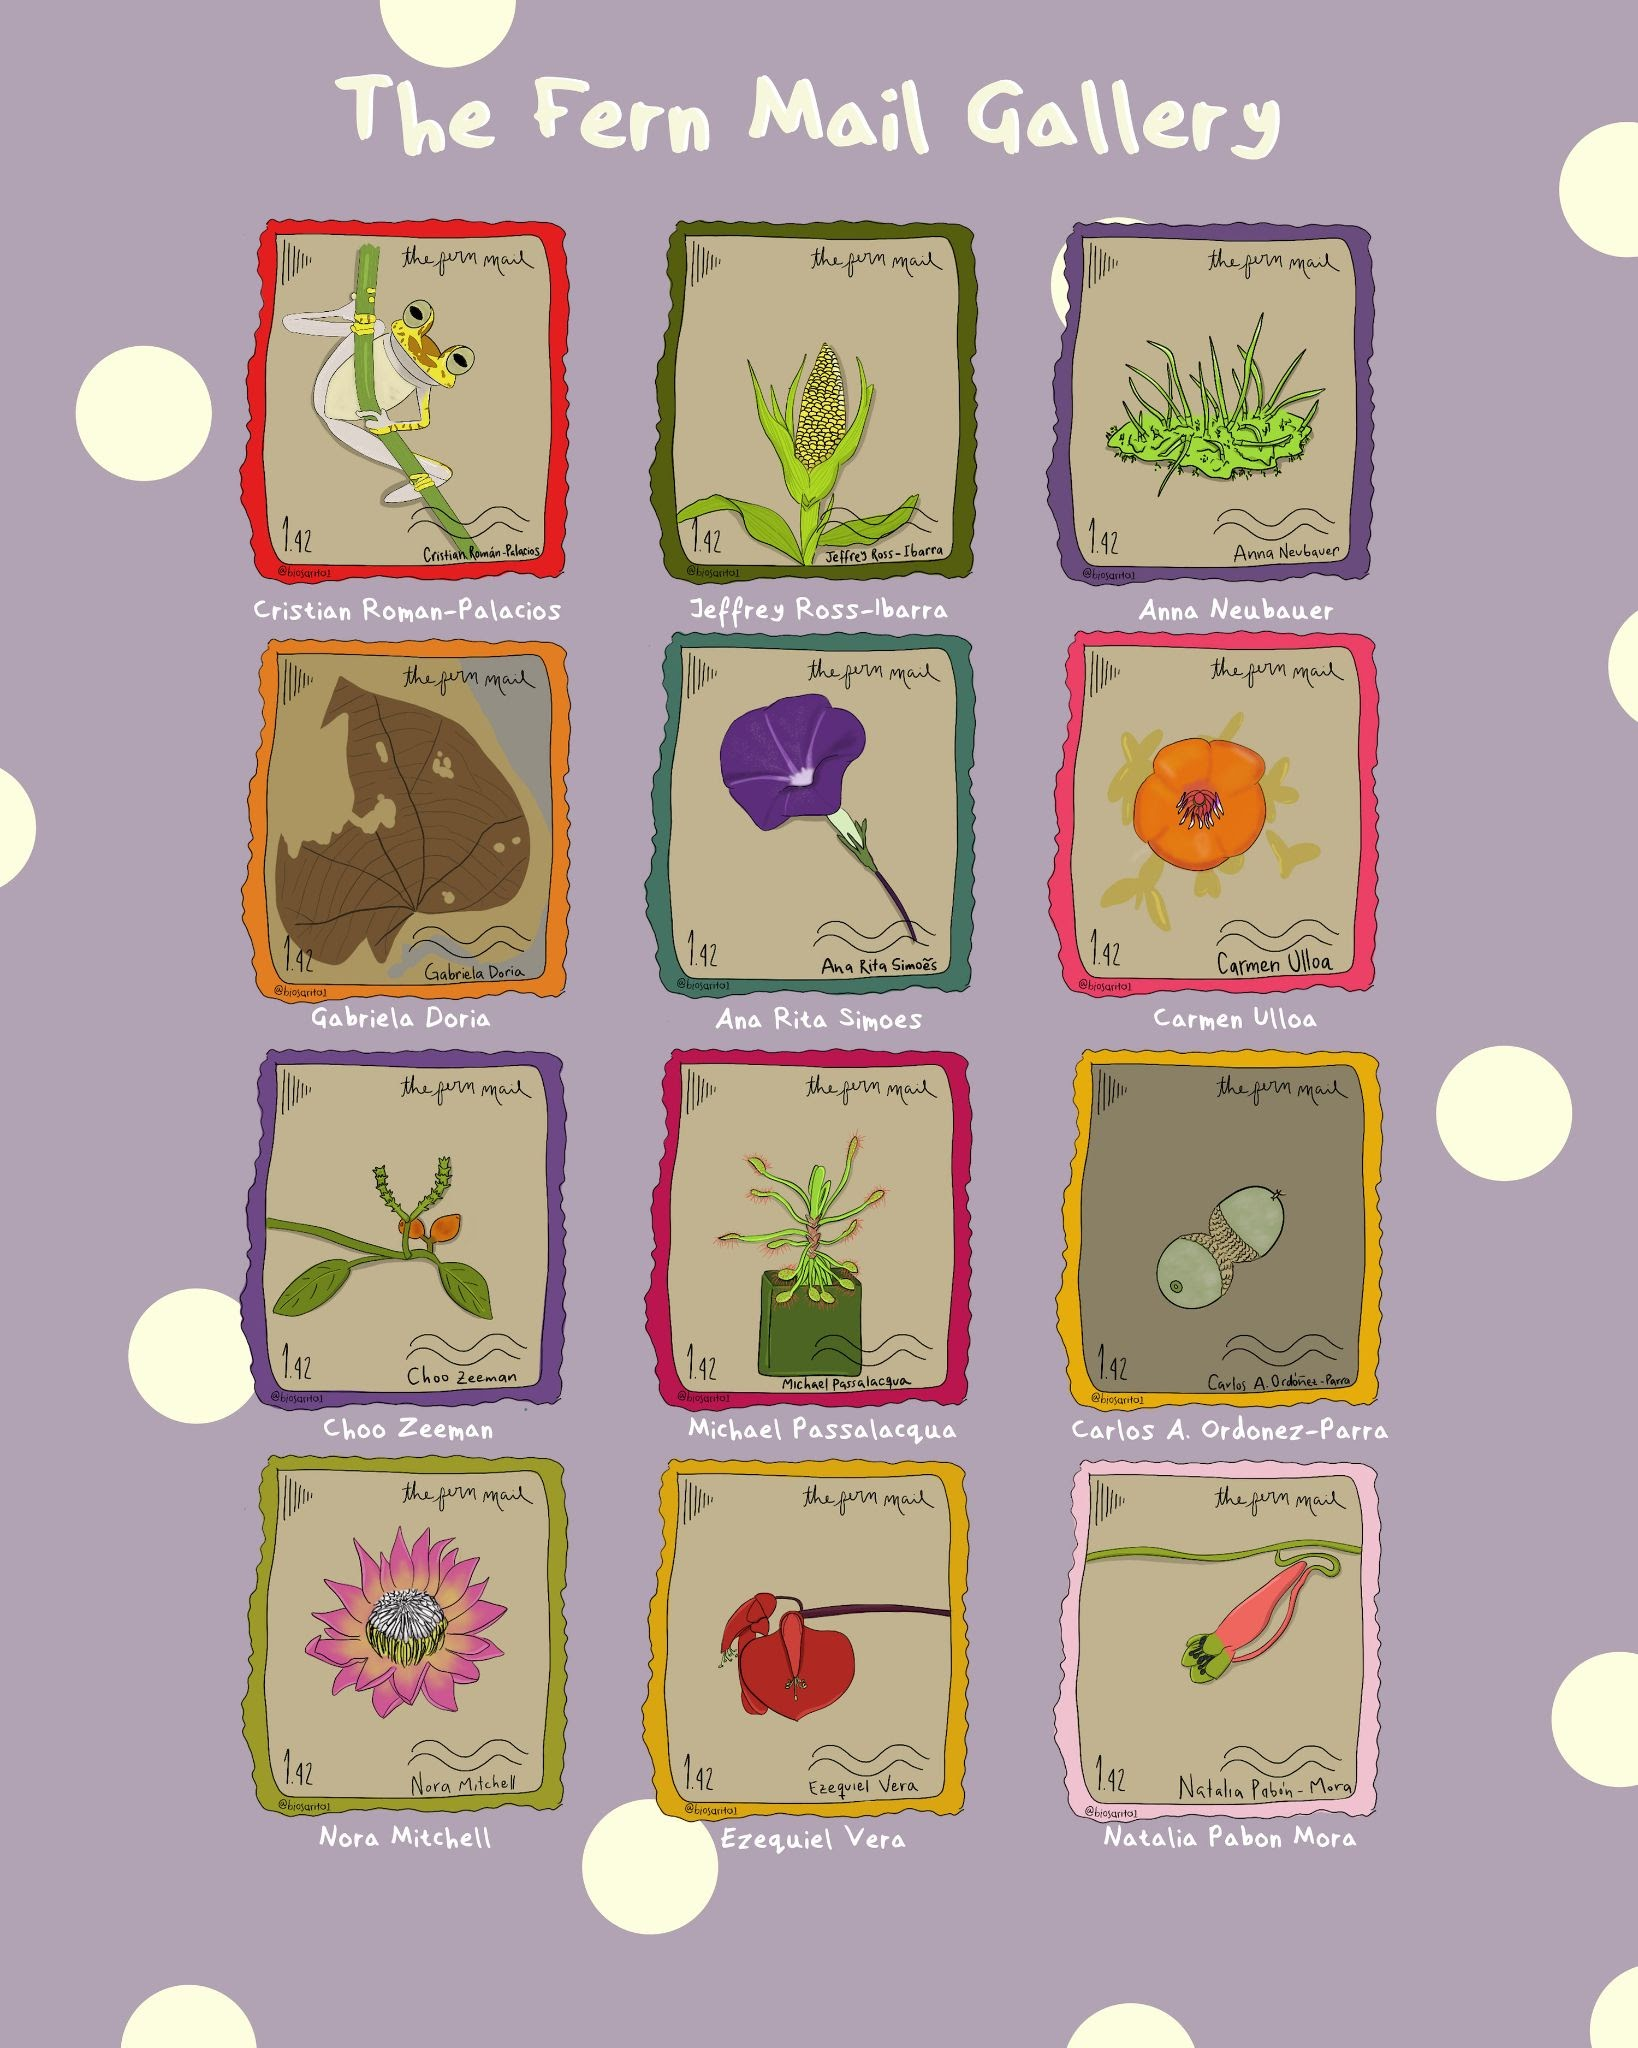 alt text: The Fern Mail Gallery by Sarita Muñoz-Gómez. On a lilac-coloured and sparsely polka-dotted background, twelve illustrated stamps are laid out in a 3 x 4 grid. From top left to bottom right: Boana picturata in a red frame for Cristian Roman-Palacios, Maize in a mossy green frame for Jeffrey Ross-Ibarra, Bryophyte in a purple frame for Anna Neubauer, Menispermites cerrejonensis in an orange frame for Gabriela Doria, Solanaceae in a green frame for Ana Rita Simoes, Meriania aurata in a pink frame for Carmen Ulloa, Gnetum gnemon in a purple frame for Choo Zeeman, Sundew in a hot pink frame for Michael Passalacqua, Quercus humboldtii in a yellow frame for Carlos A. Ordonez-Parra, Protea in a light green frame for Nora Mitchell, Erythrina crista-galli in a mustard yellow frame for Ezequiel Vera, and Tropaeolum in a baby pink frame for Natalia Pabon Mora.